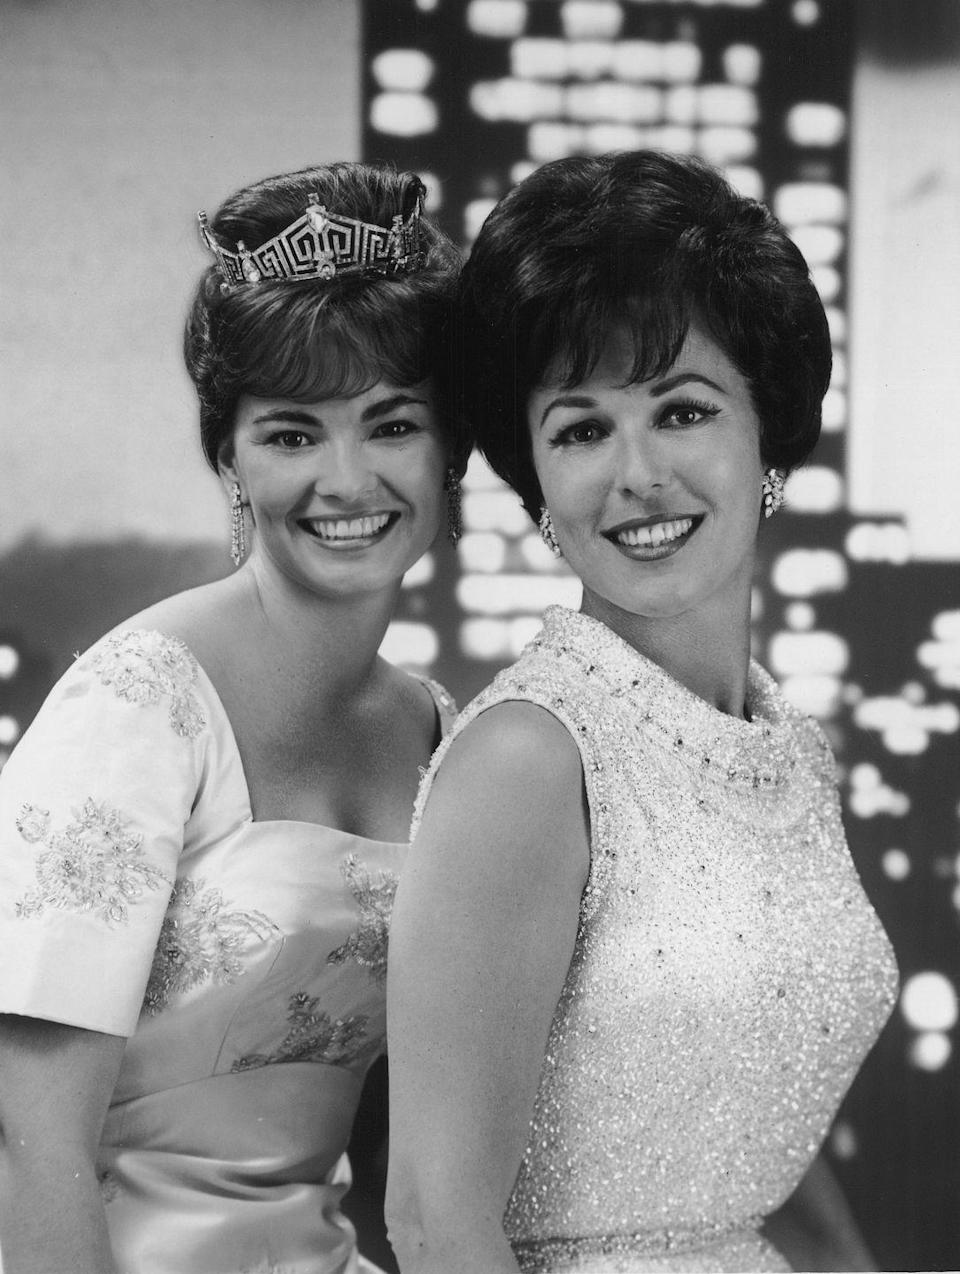 <p>Former Miss Americas, Vonda Kay Van Dyke (1965) and Bess Myerson (1945), strike a pose in embroidered evening gowns, while attending the 1966 Miss America pageant. </p>